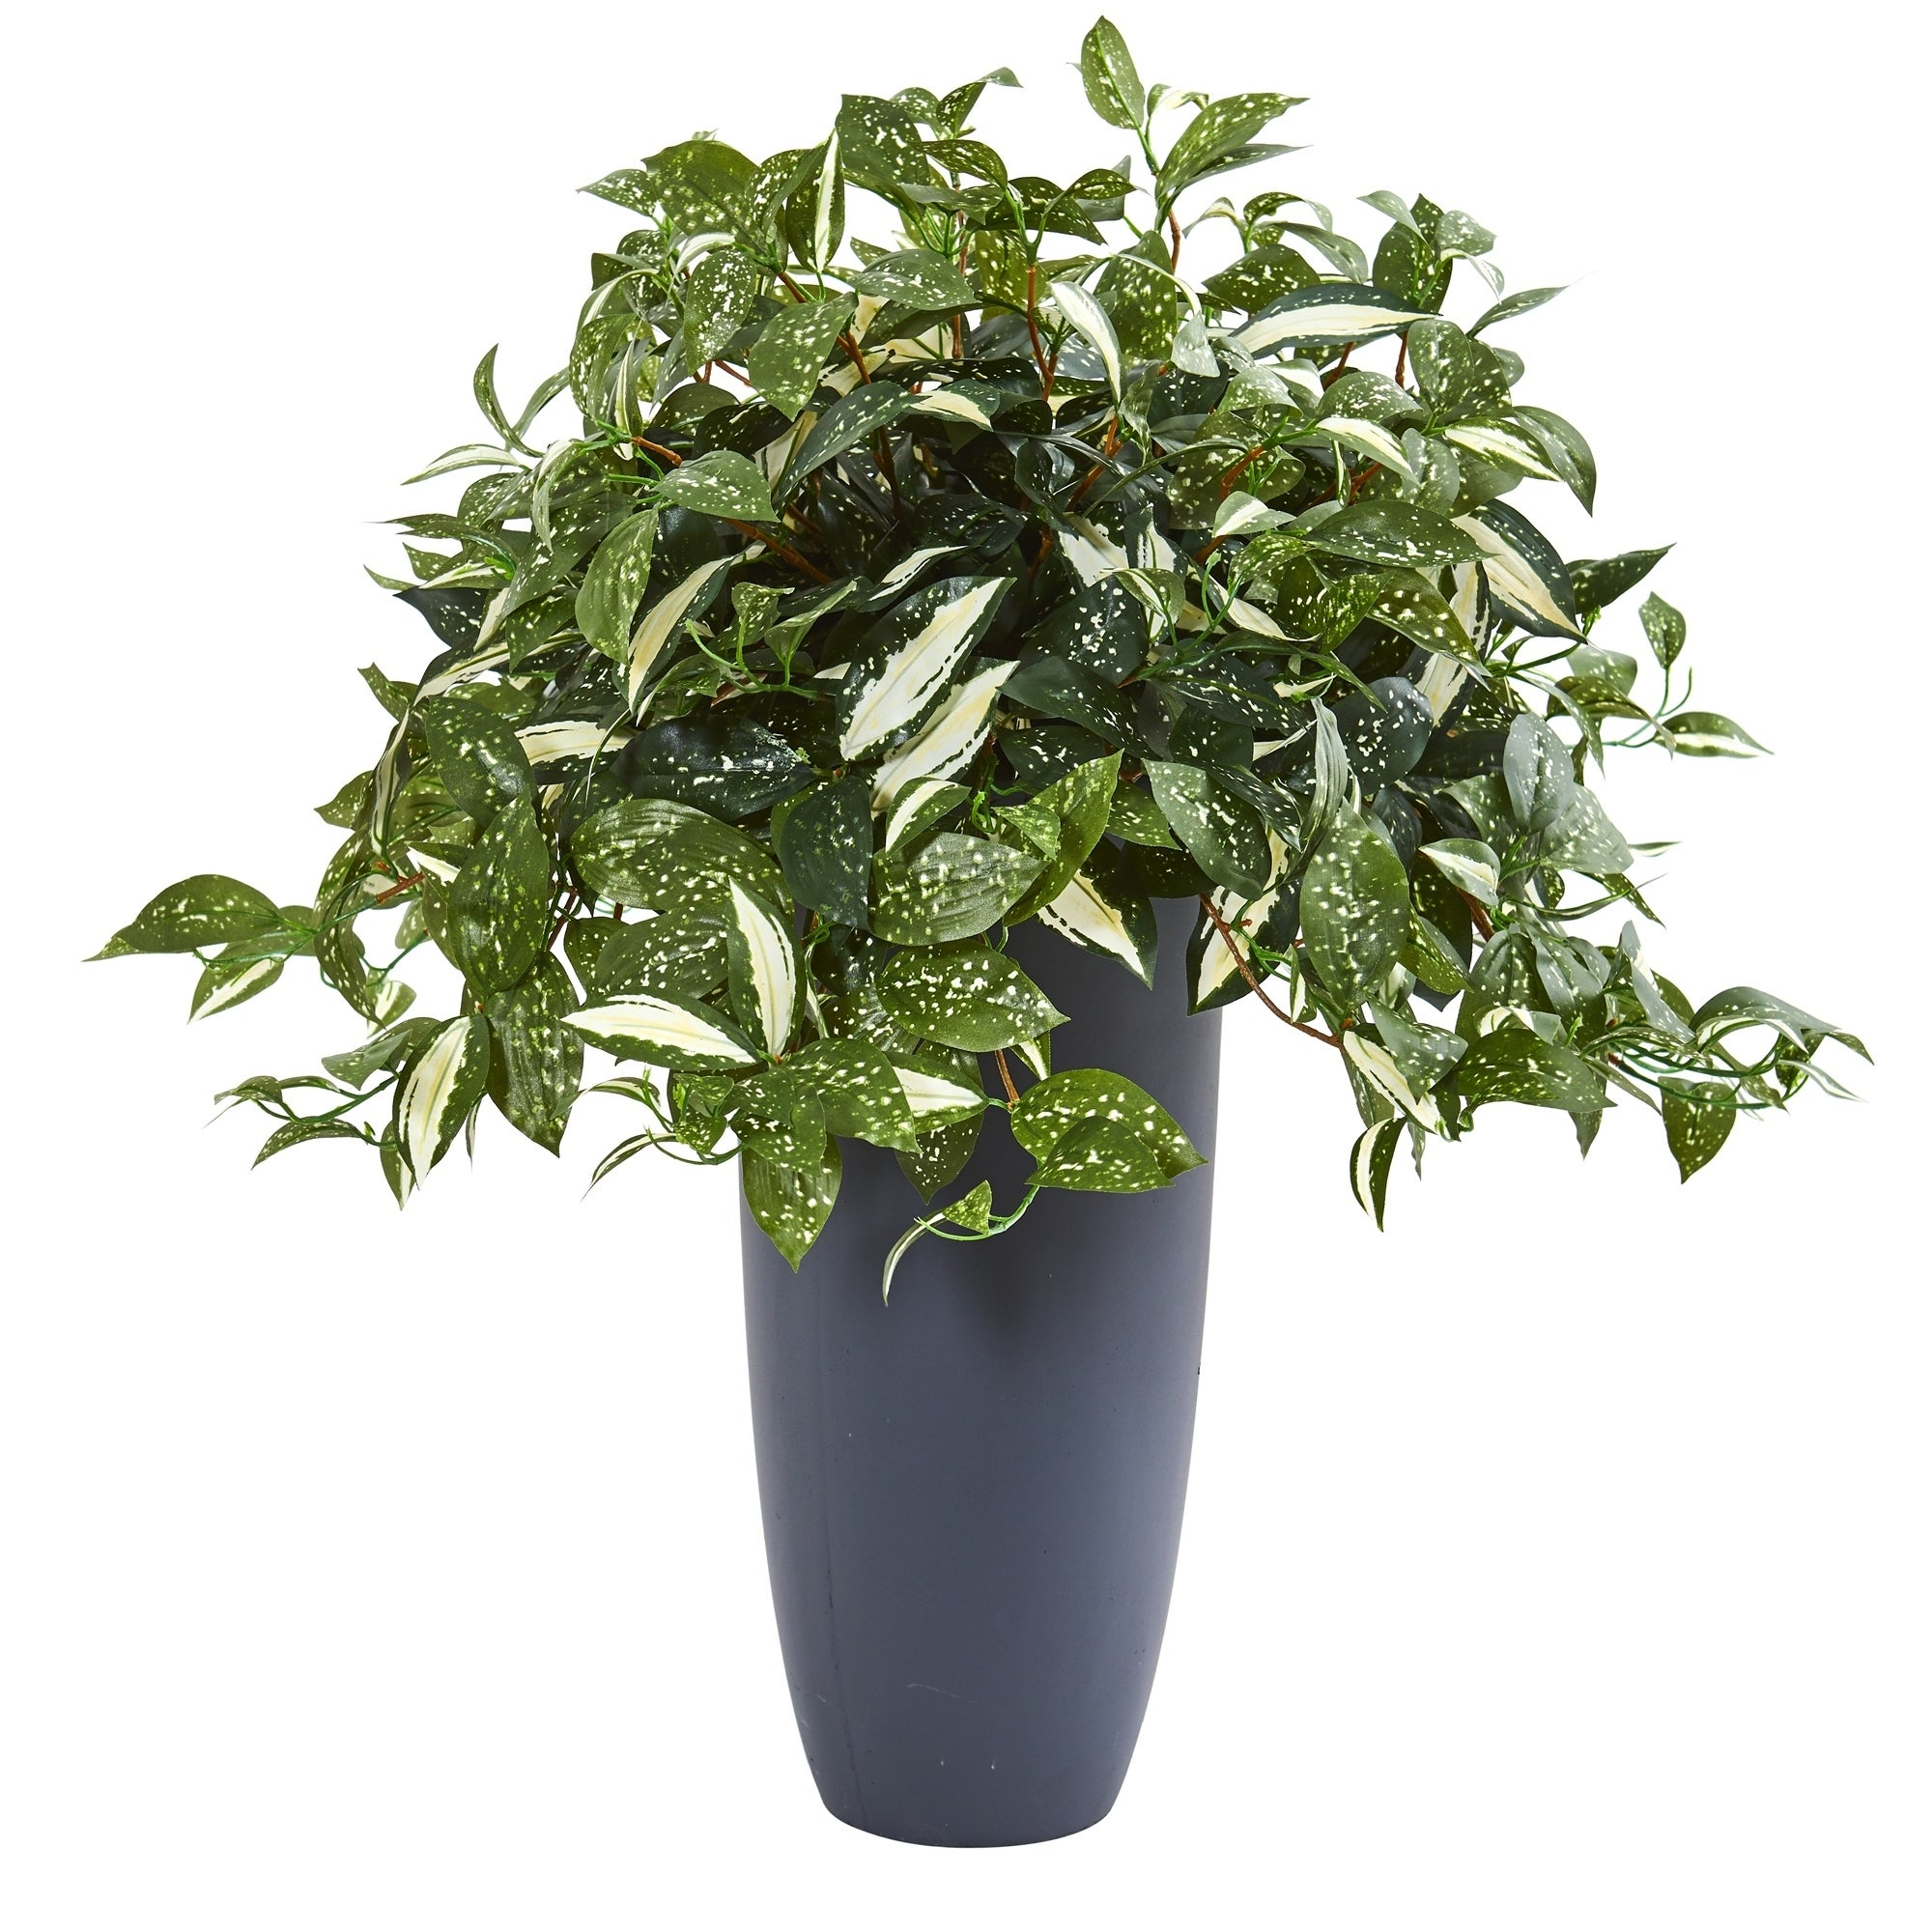 28 Florida Beauty Artificial Plant in Gray Planter